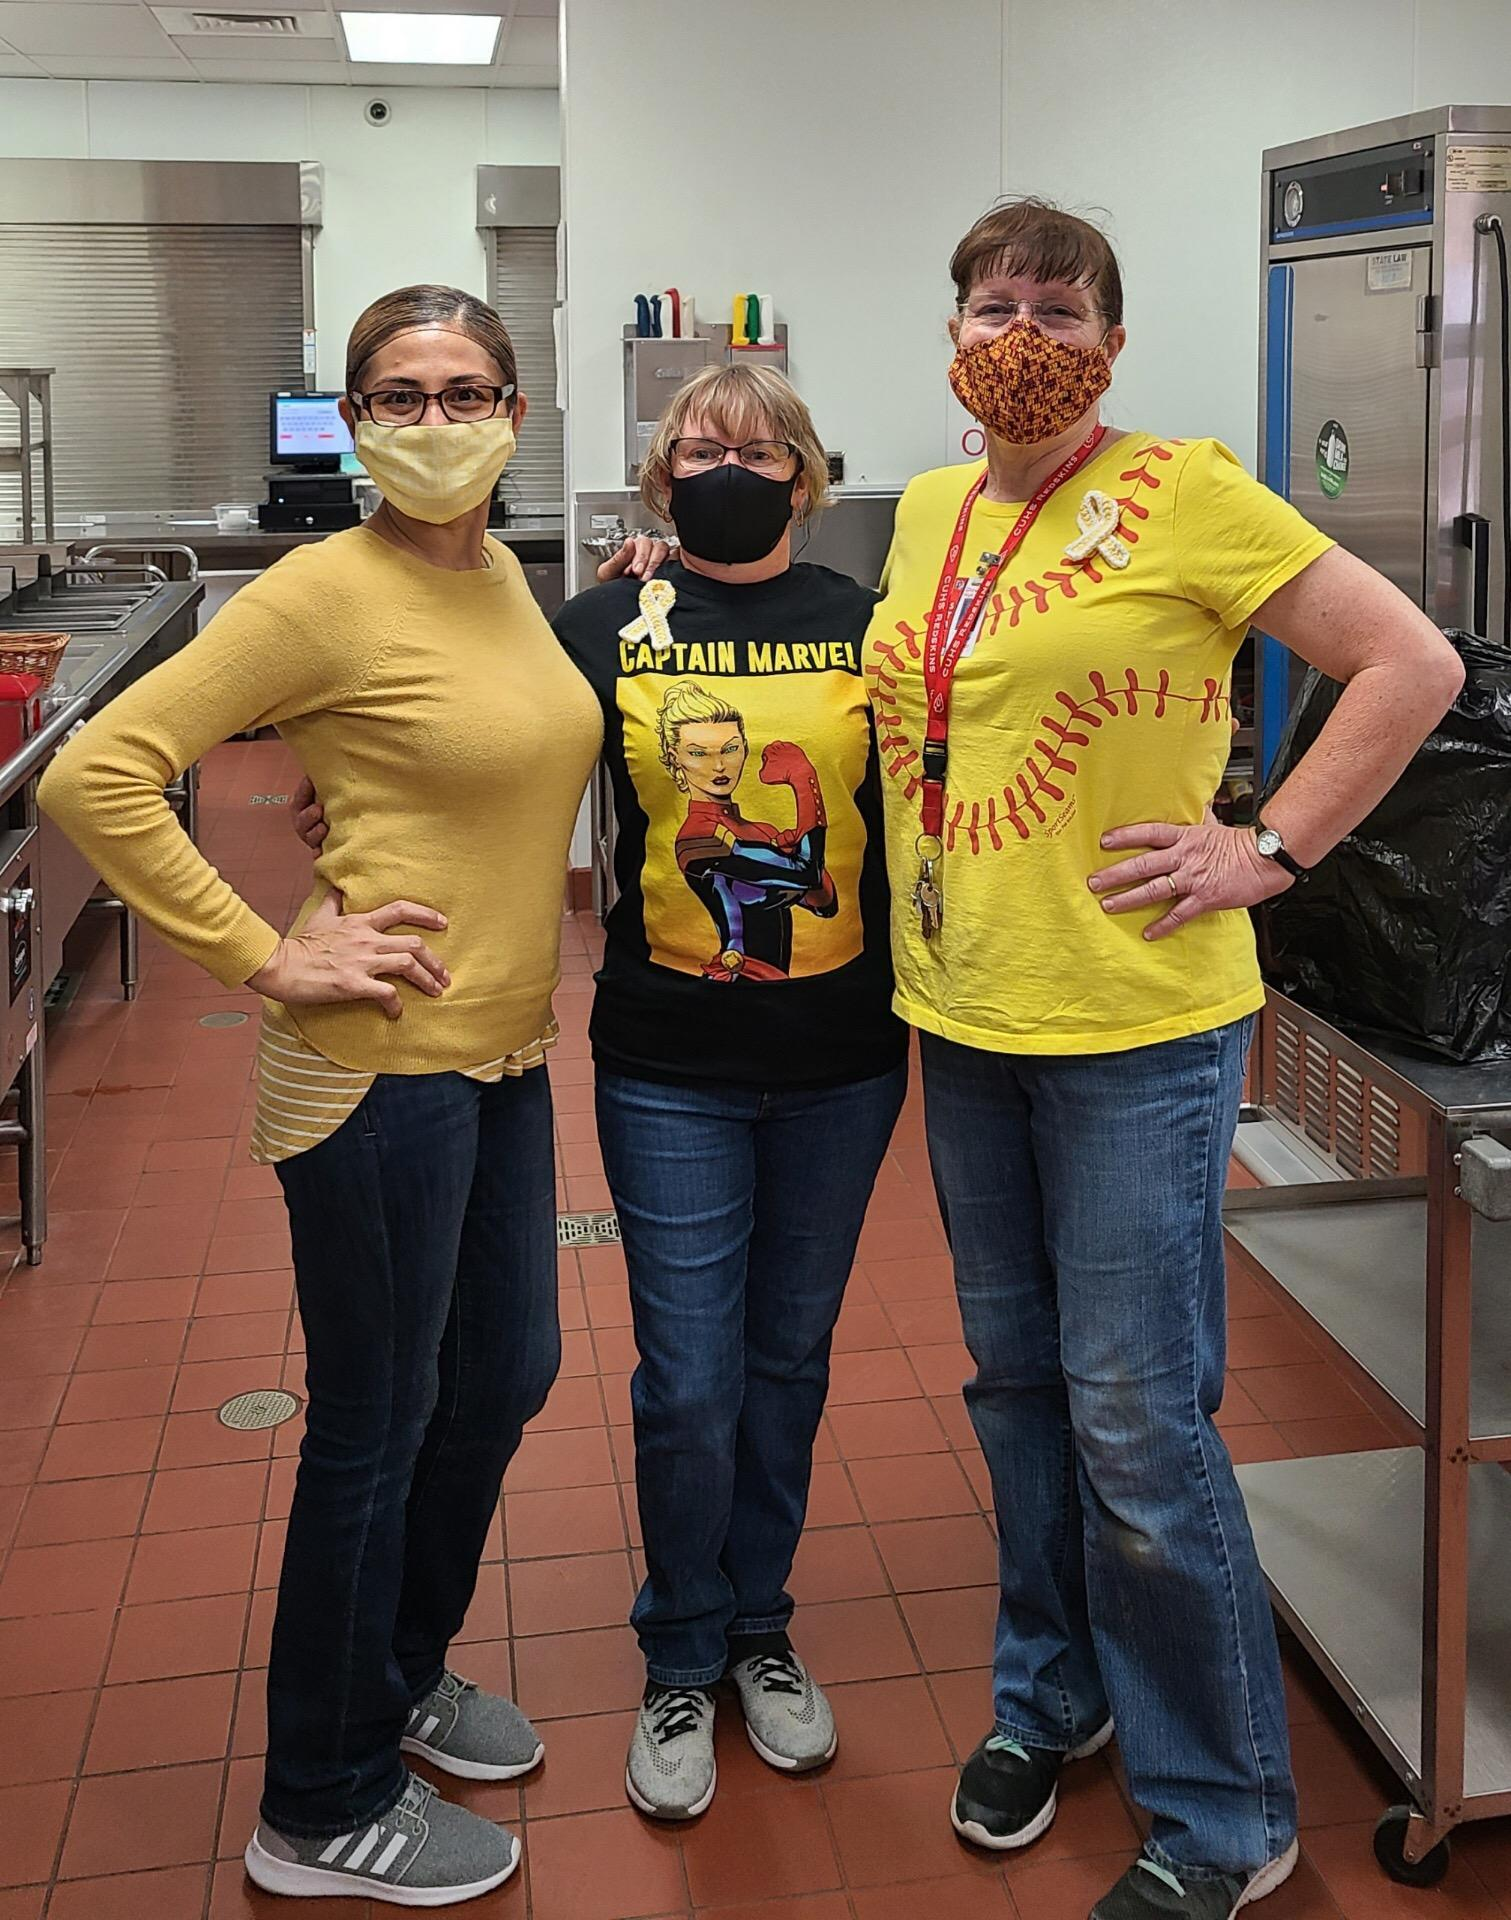 Cafeteria Staff wearing yellow